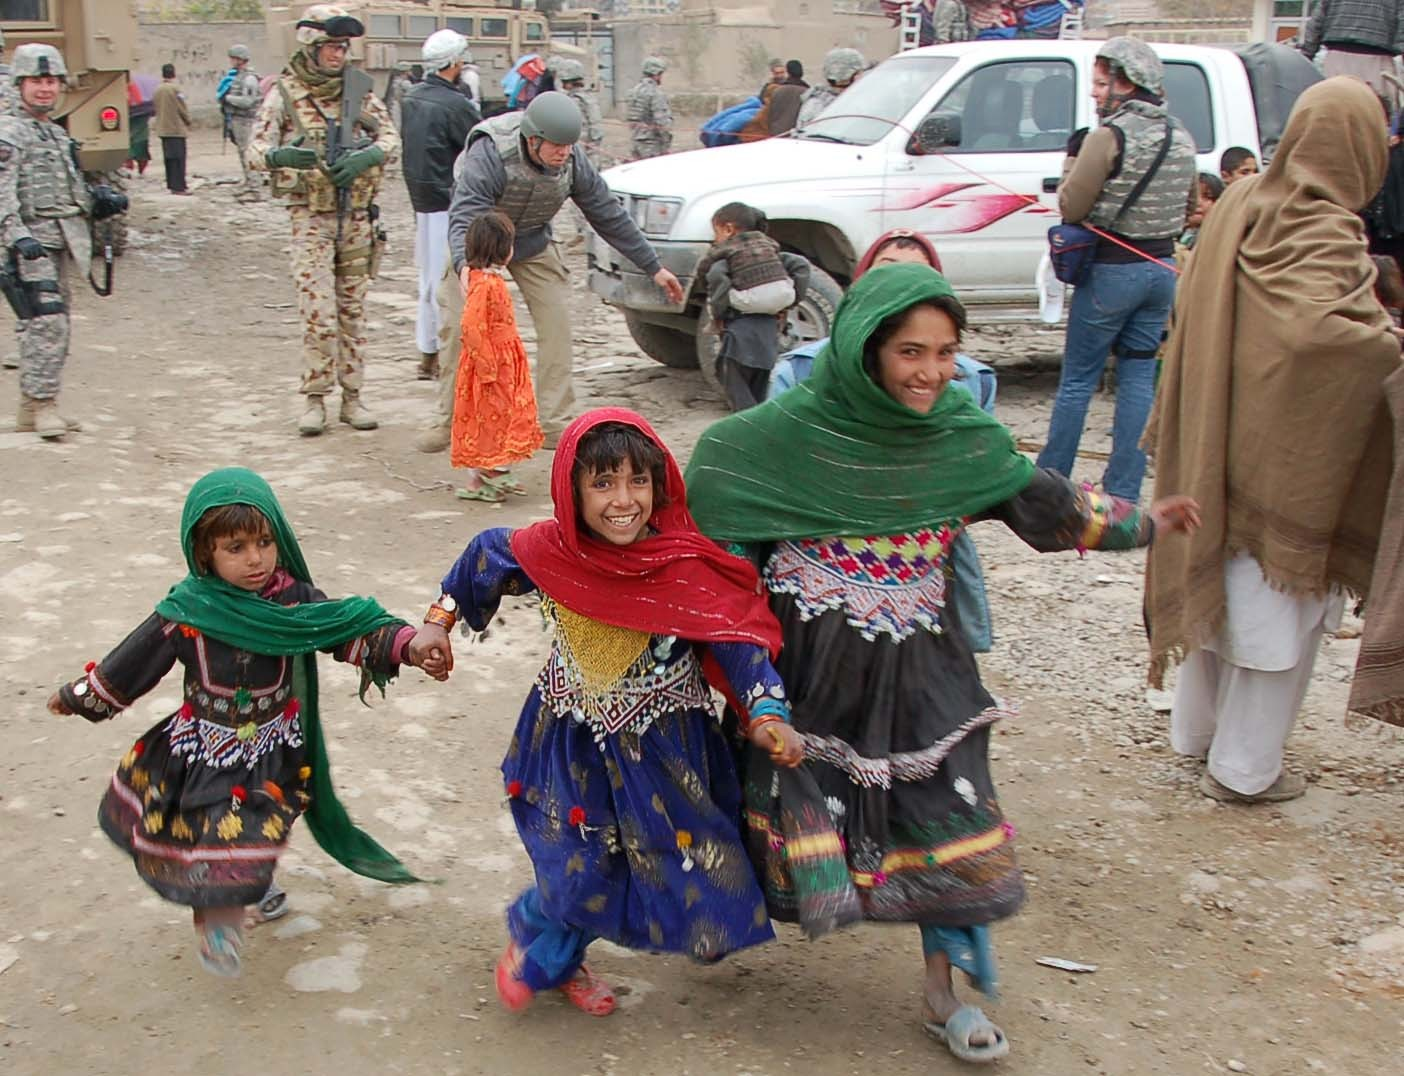 Young Afghan girls, excited by the arrival of